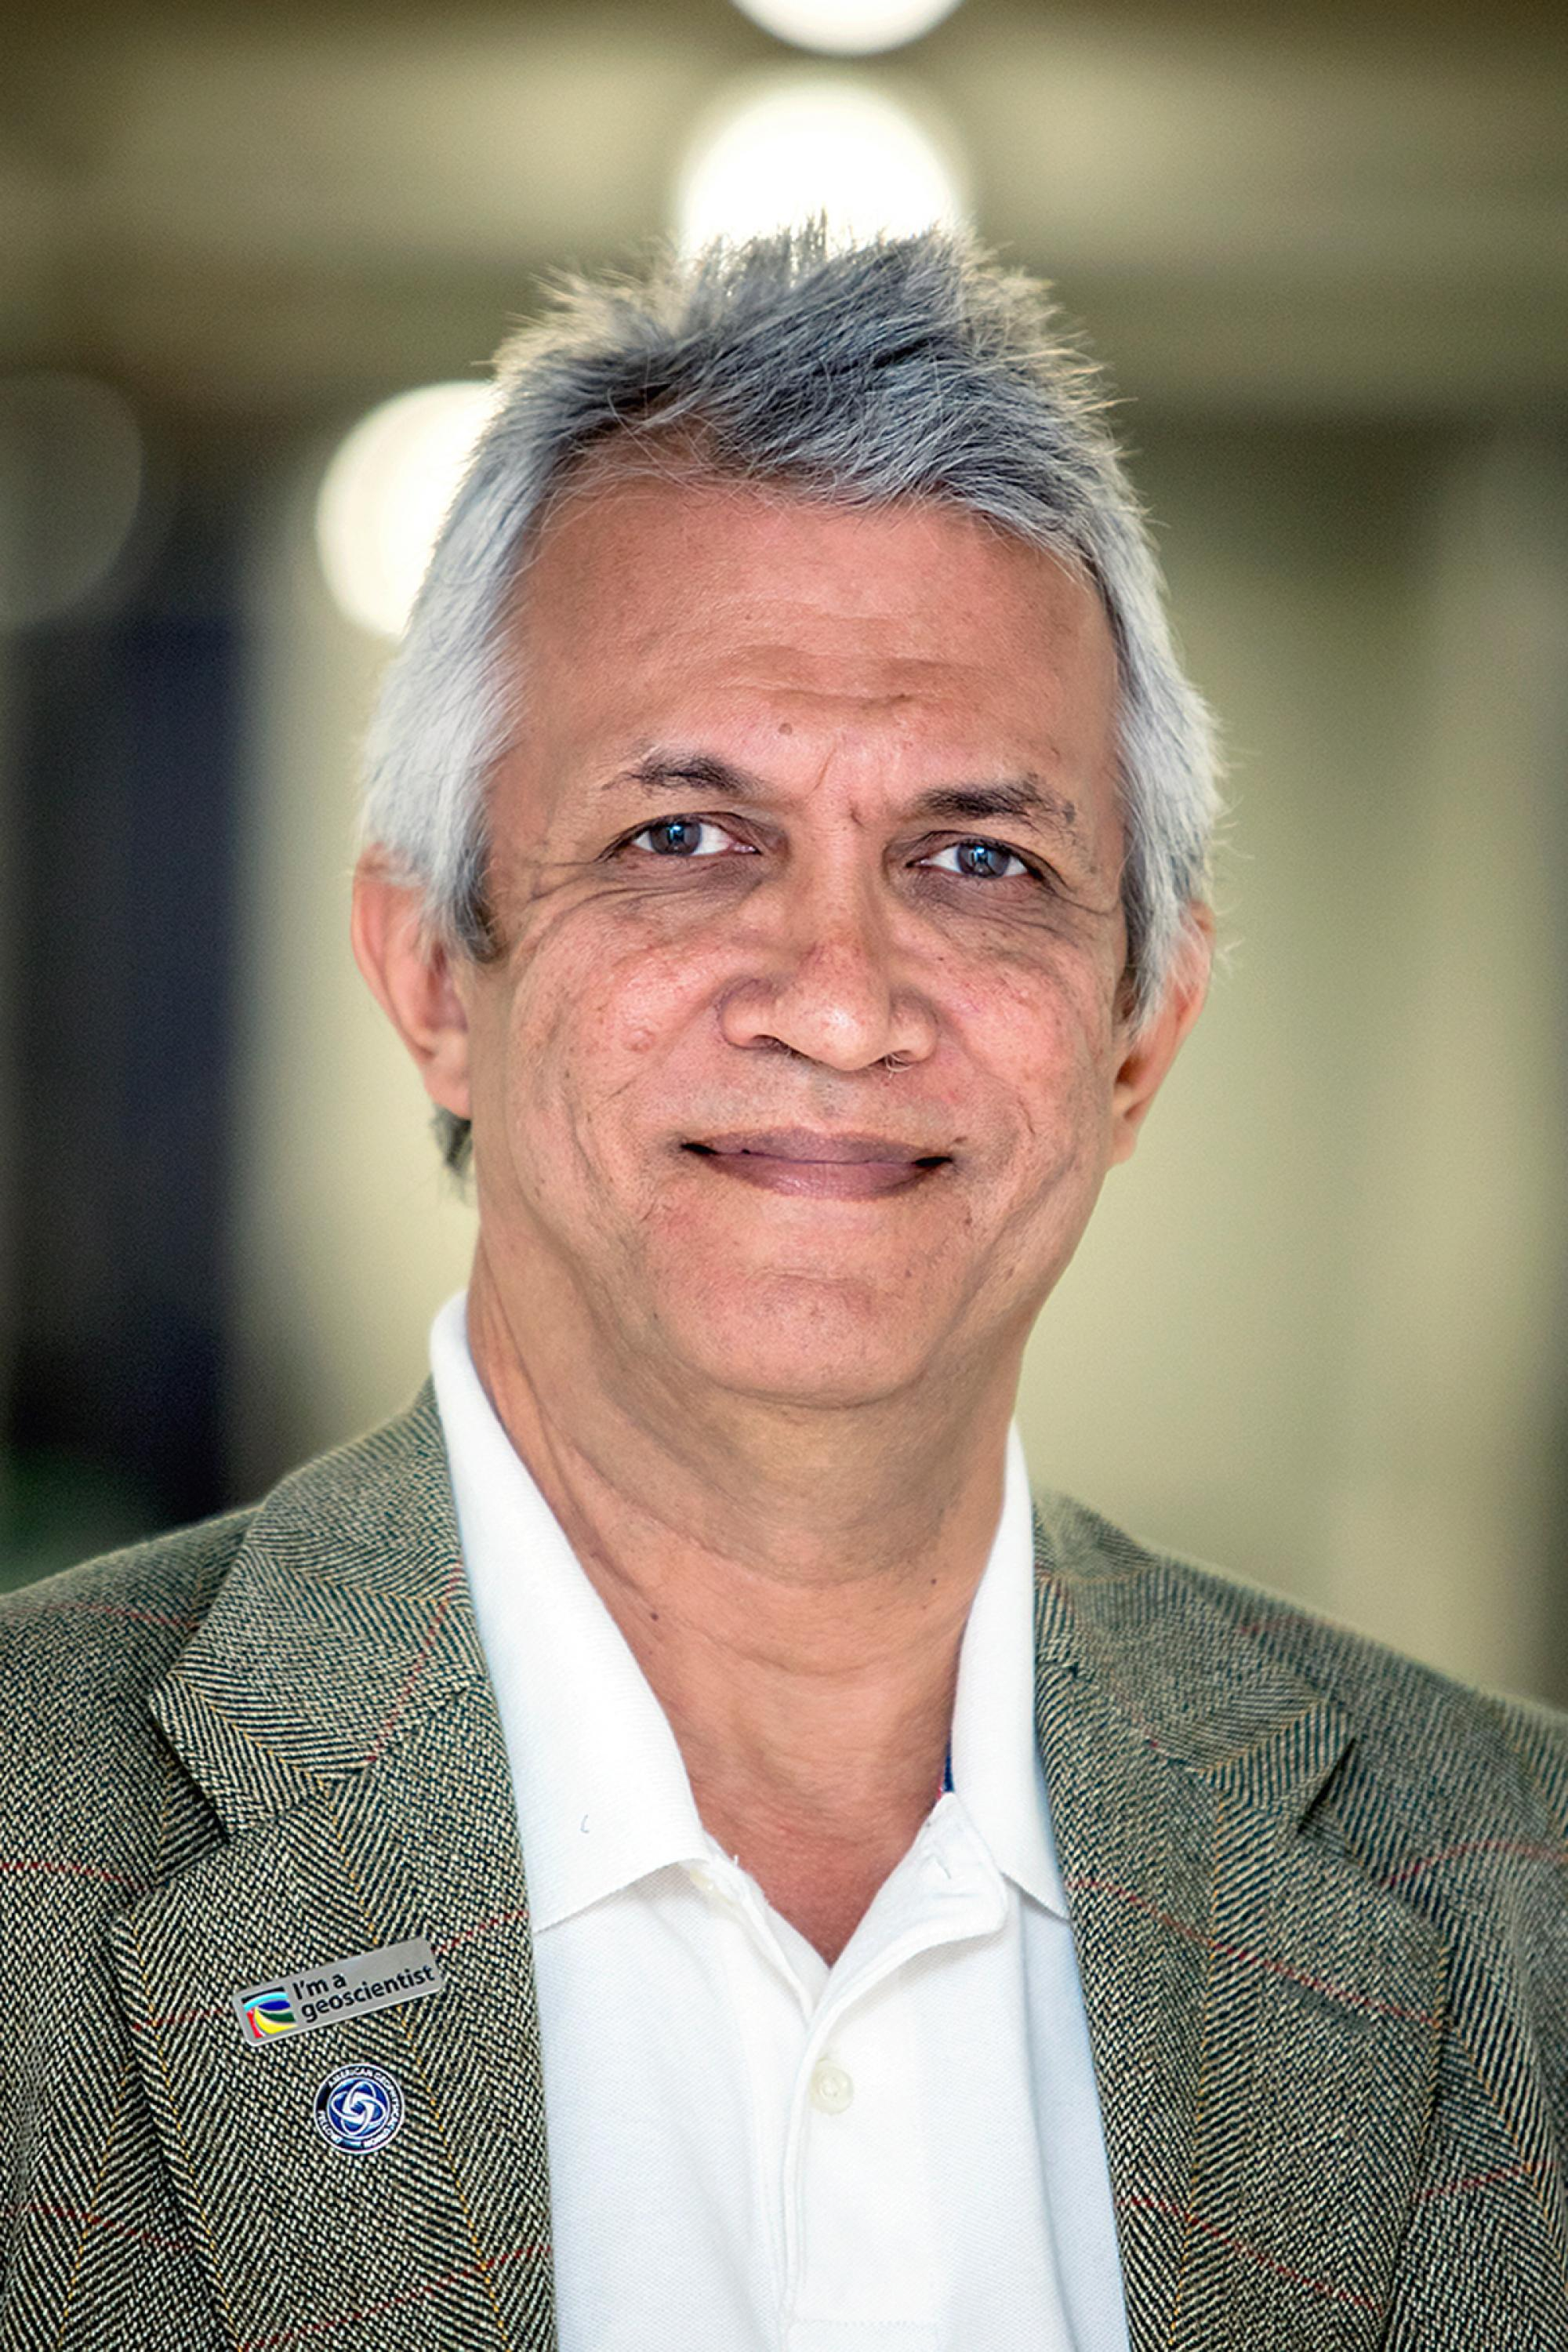 Hoshin Gupta's work is highly recognized nationally and internationally. Also, Gupta's excellence in the classroom, both at the graduate and undergraduate level, has been acknowledged through numerous teaching awards.